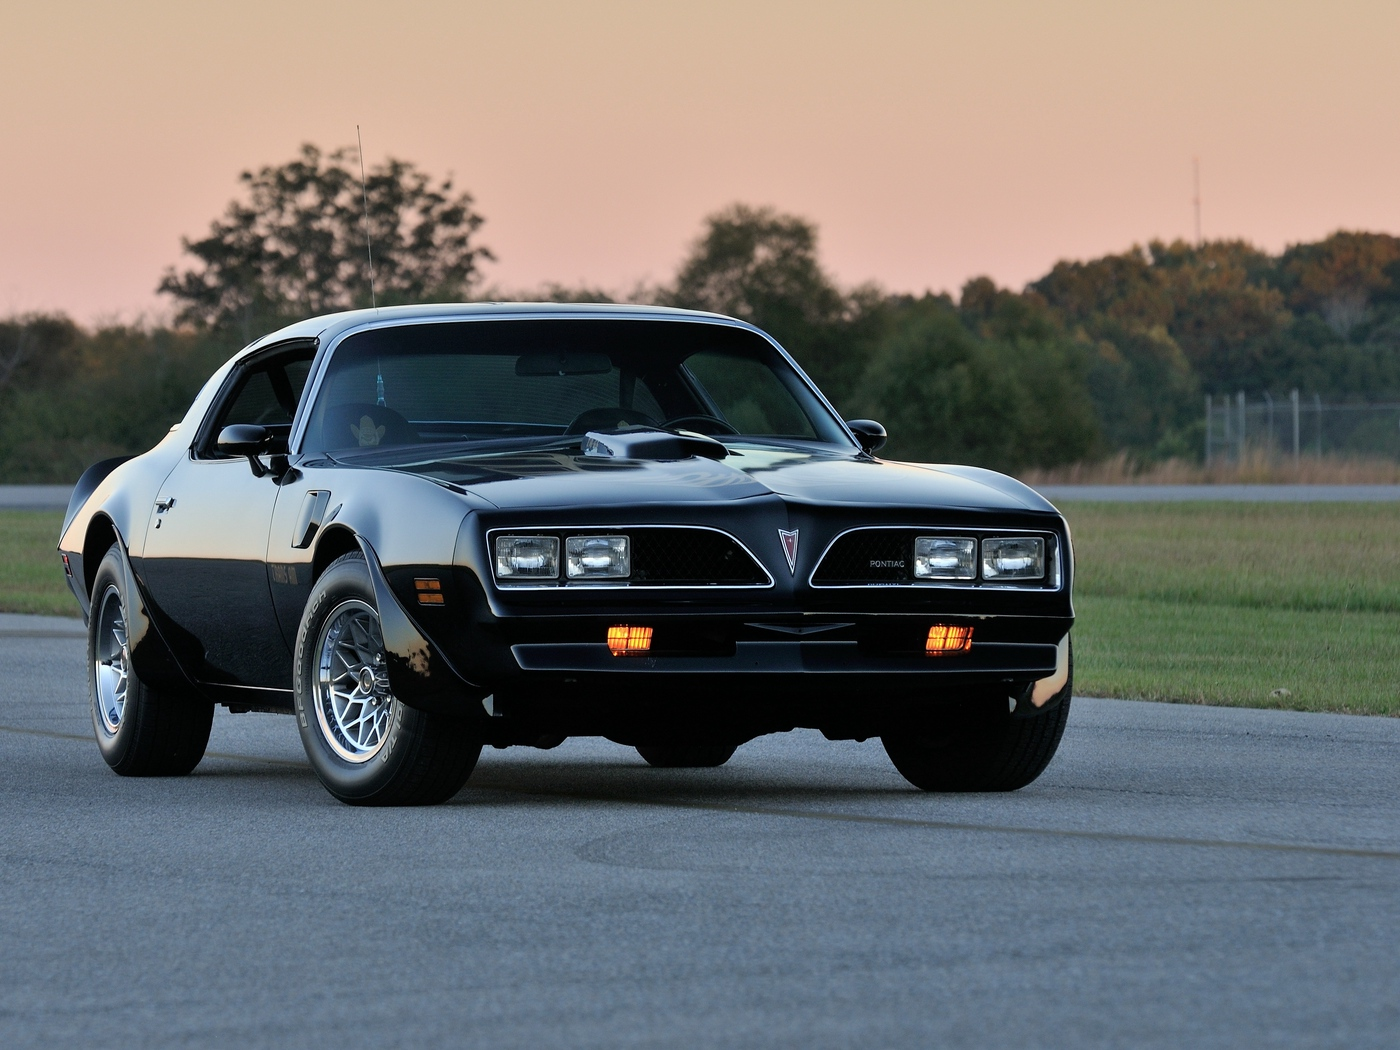 Download wallpaper 1400x1050 pontiac firebird trans am ws6 1400x1050